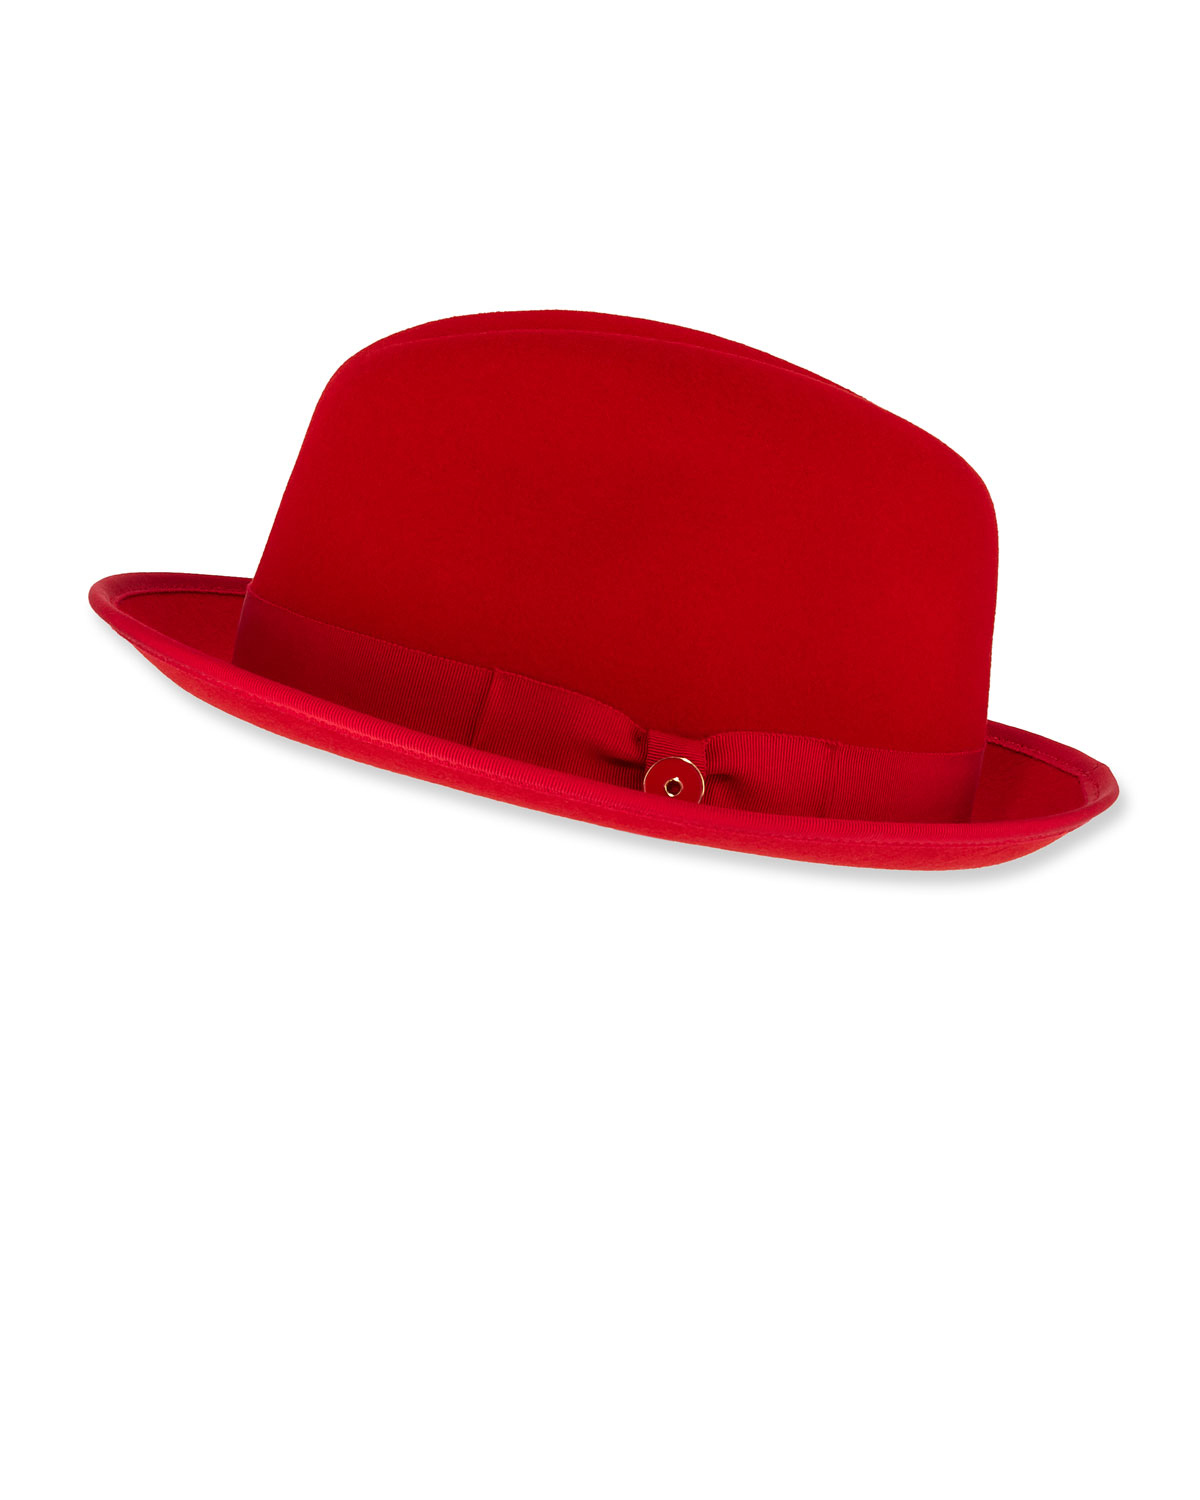 c447836835f9f Keith and James Men s Prince Red-Brim Wool Fedora Hat